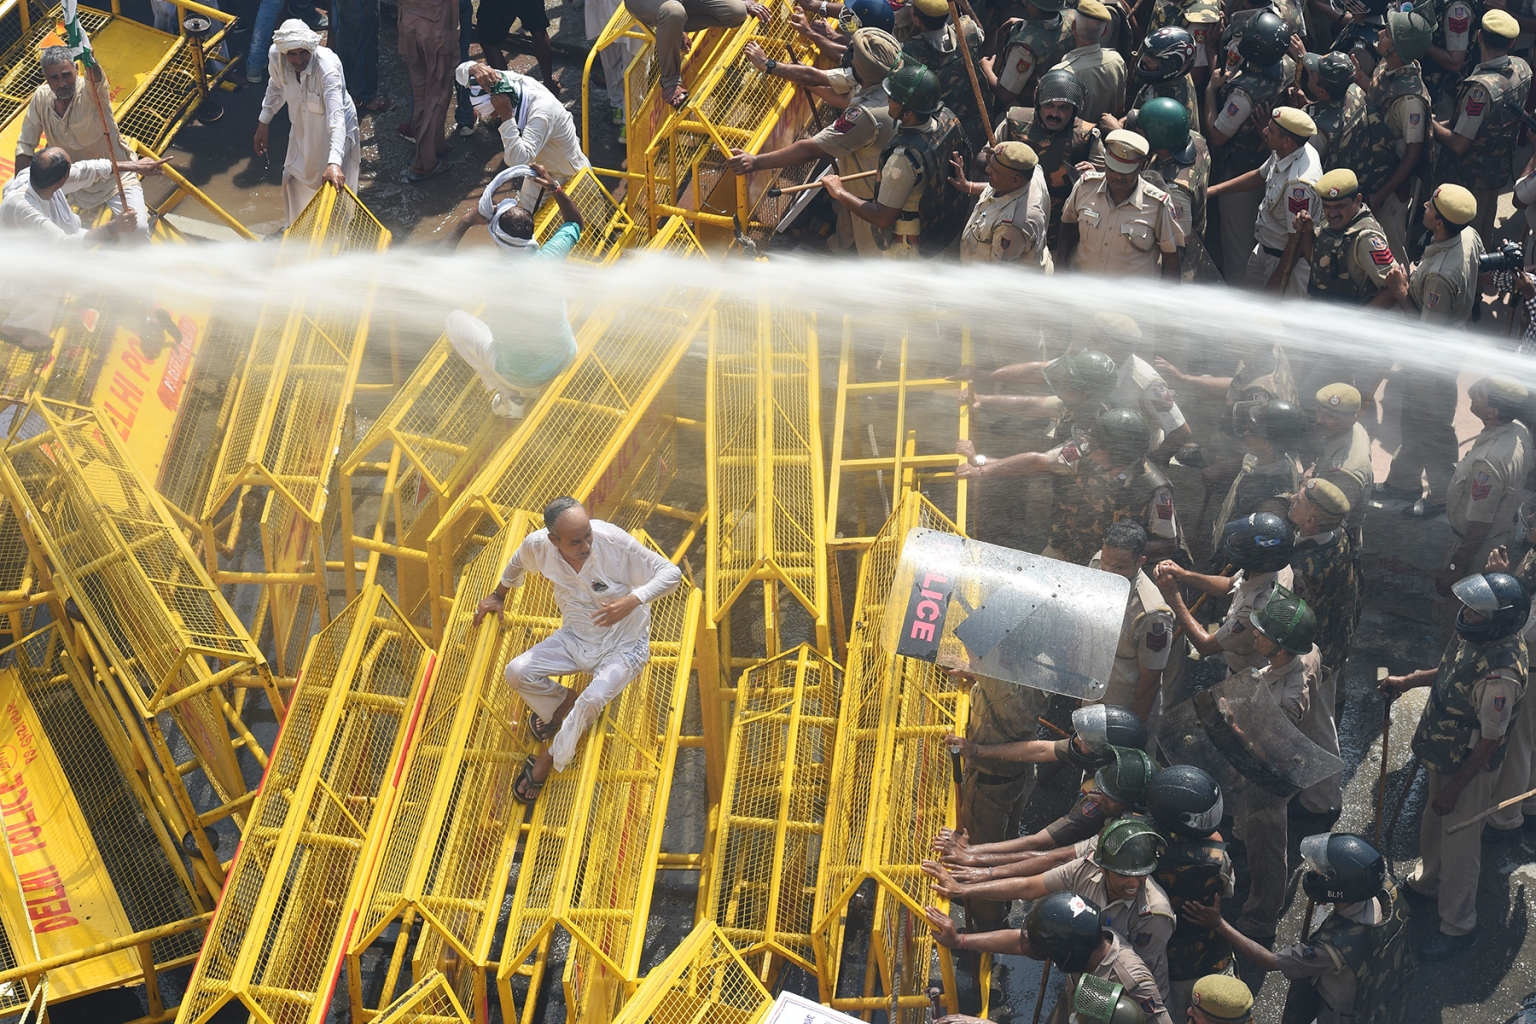 New Delhi police use water cannons to disperse and stop farmer activists of the Bhartiya Kisan Union at the border with Ghazipur during their march to New Delhi on Oct. 2. PRAKASH SINGH/AFP/Getty Images